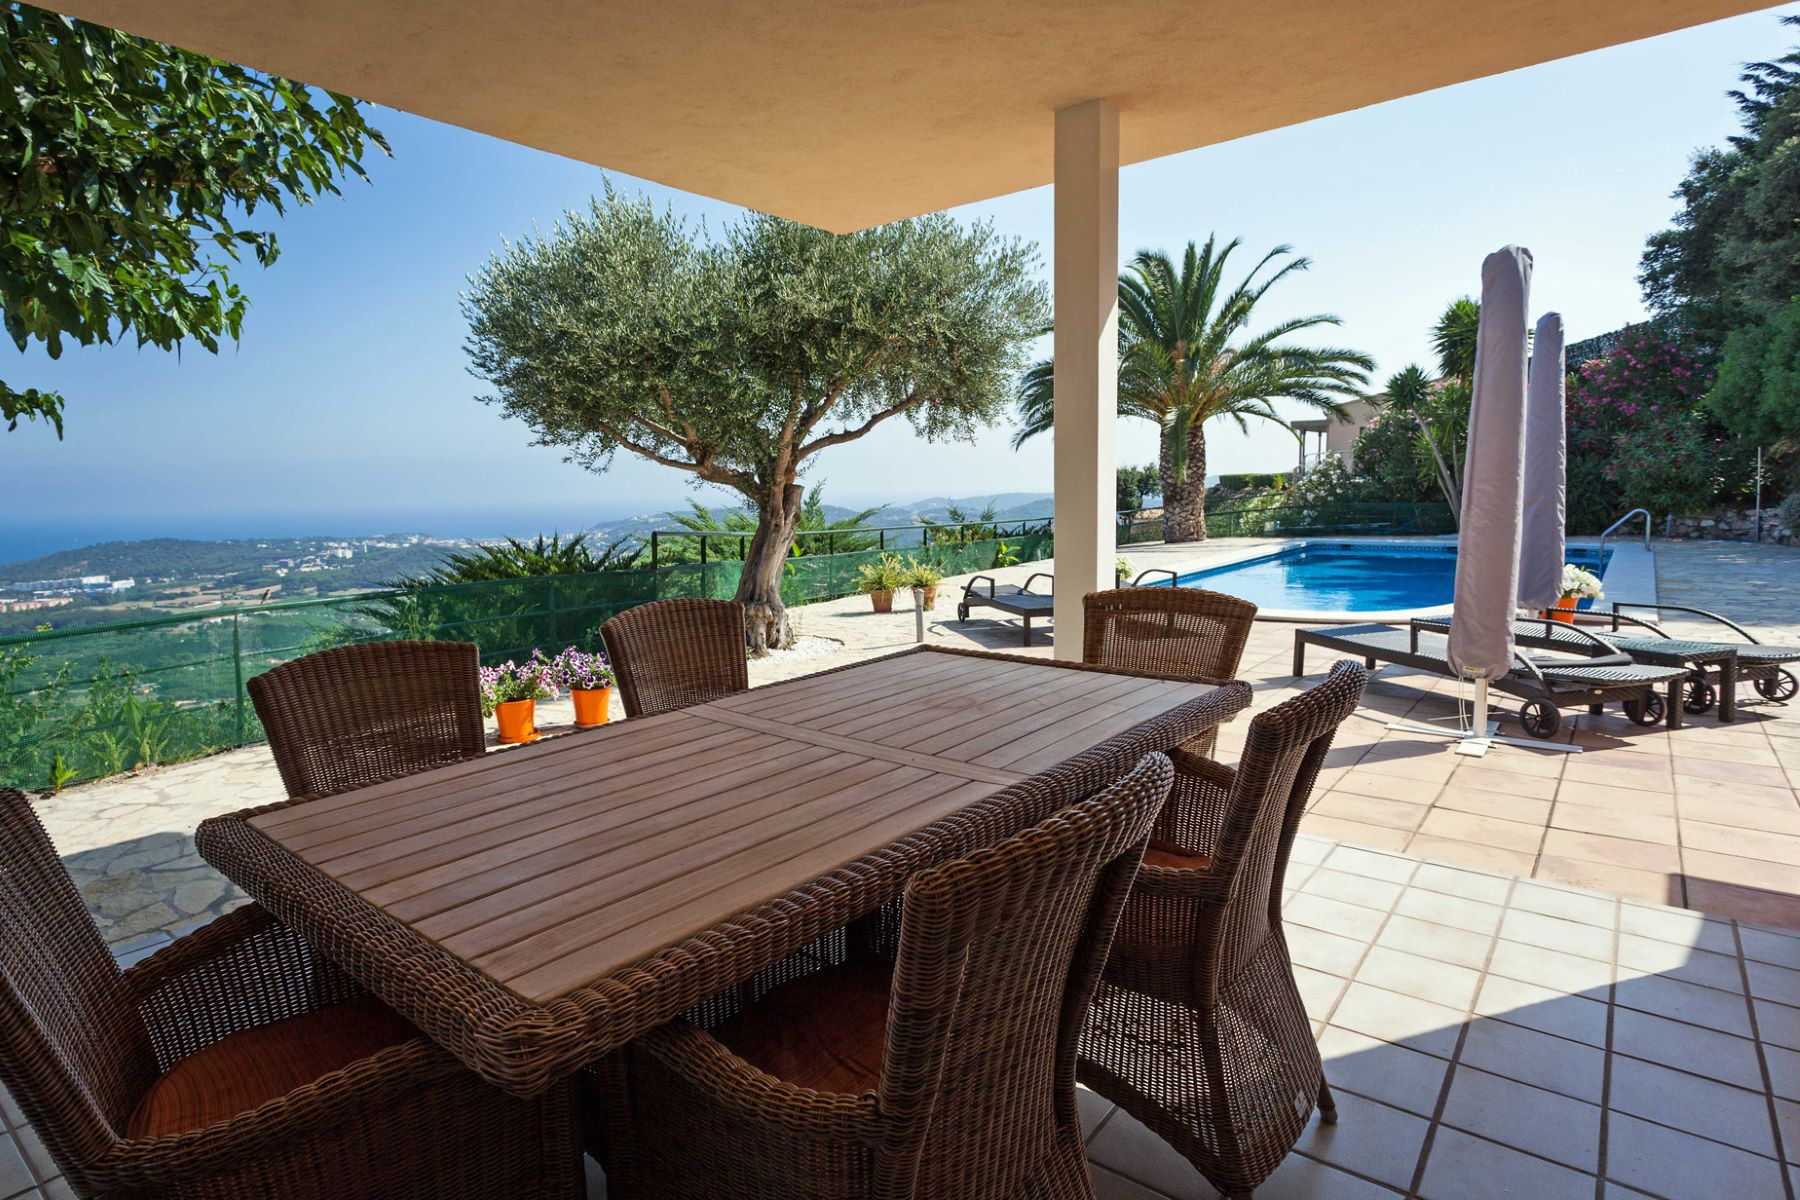 Single Family Home for Sale at Detached house with panoramic sea views Playa De Aro, Costa Brava, 17250 Spain